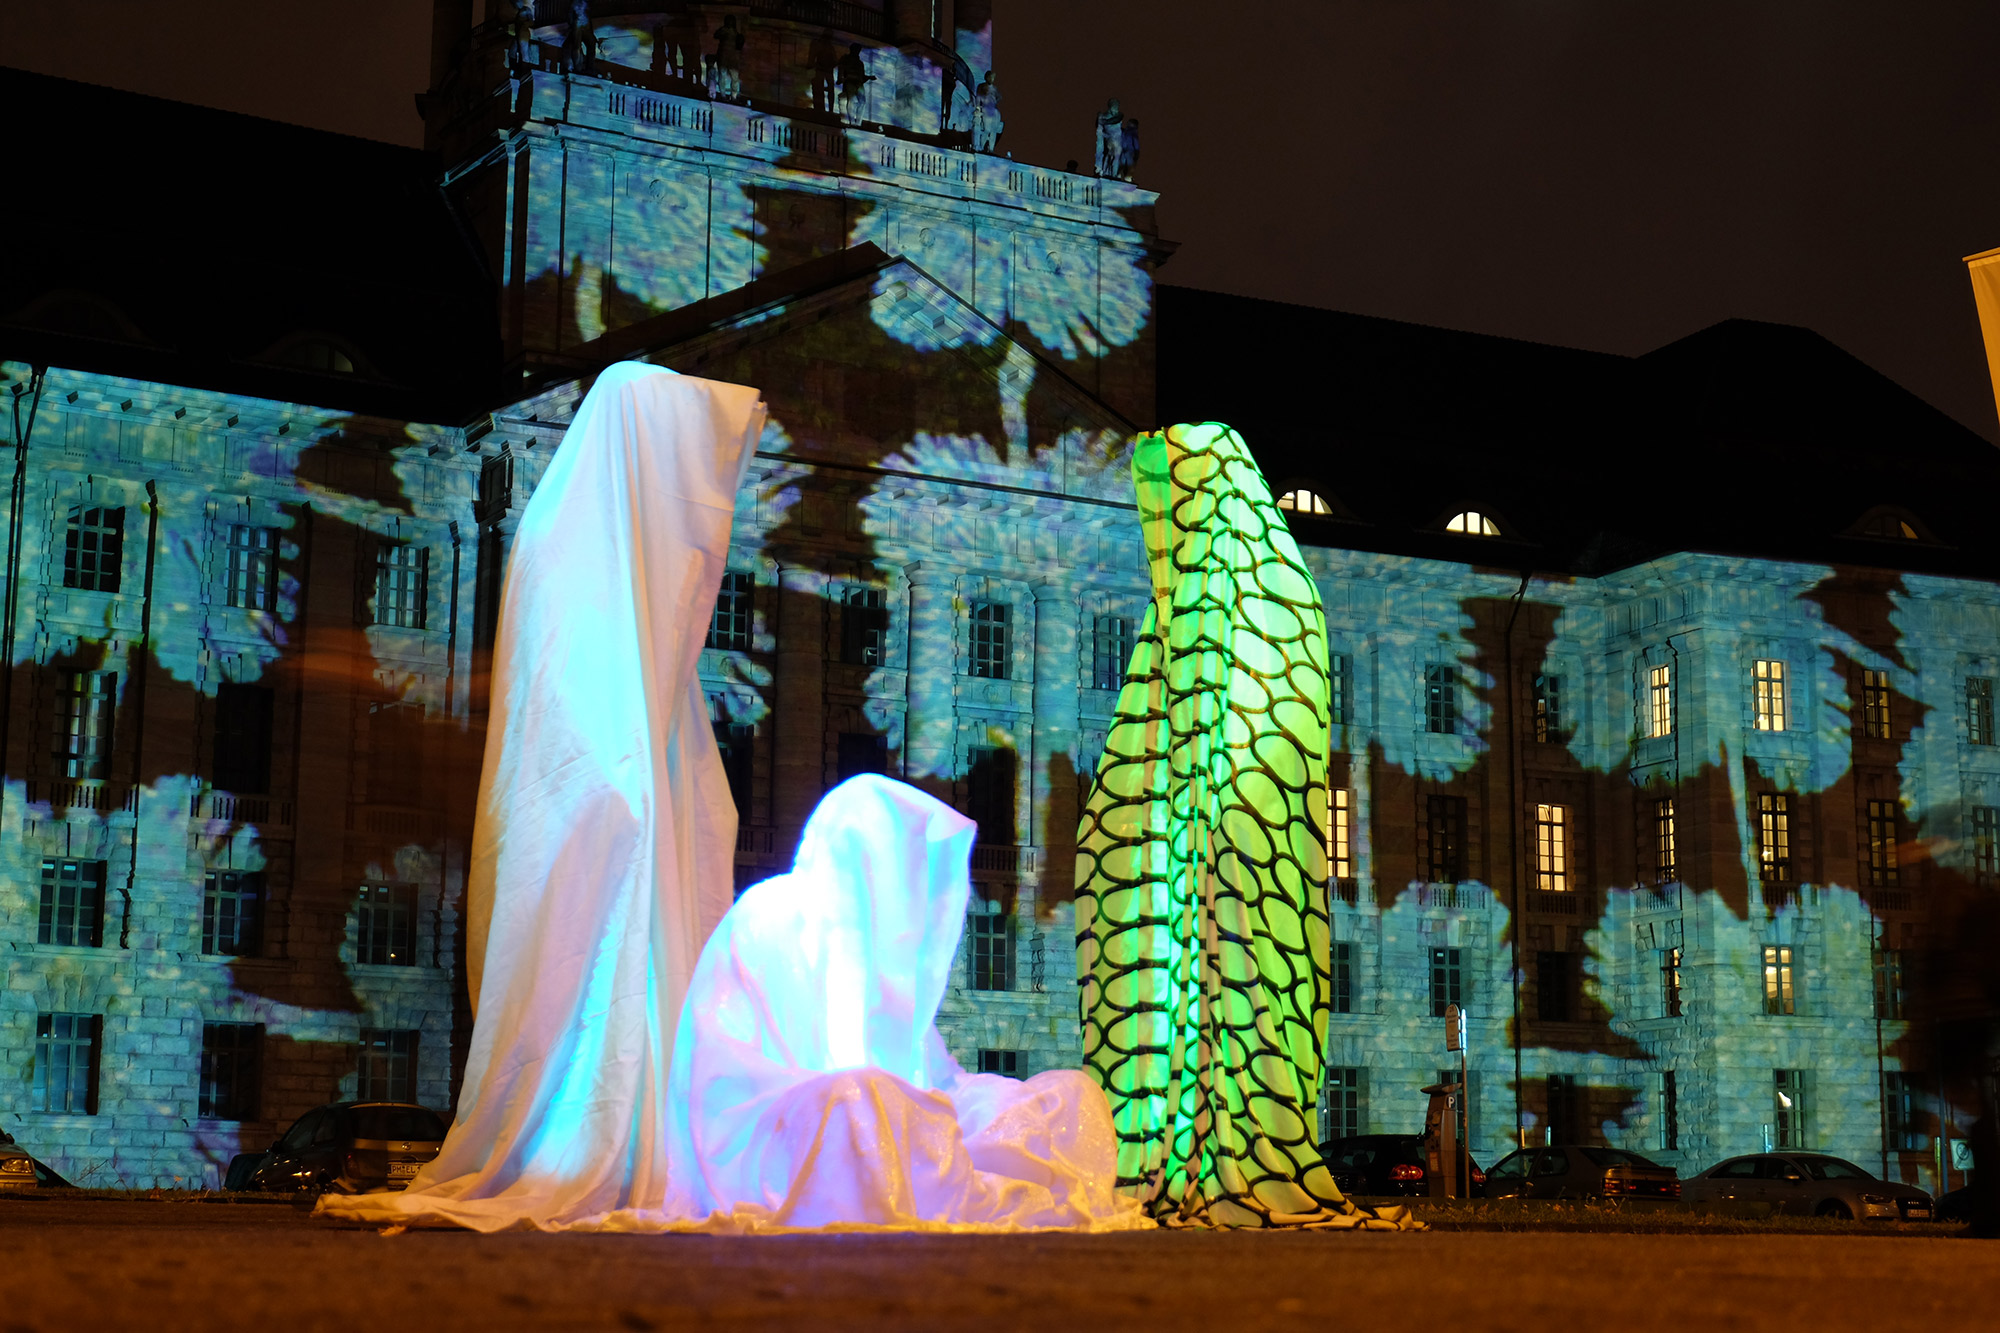 festival-of-lights-berlin-guardians-of-time-manfred-kielnhofer-lumina-light-contemporary-art-design-statue-sculpture-fineart-ghost-faceless-no-face-9216